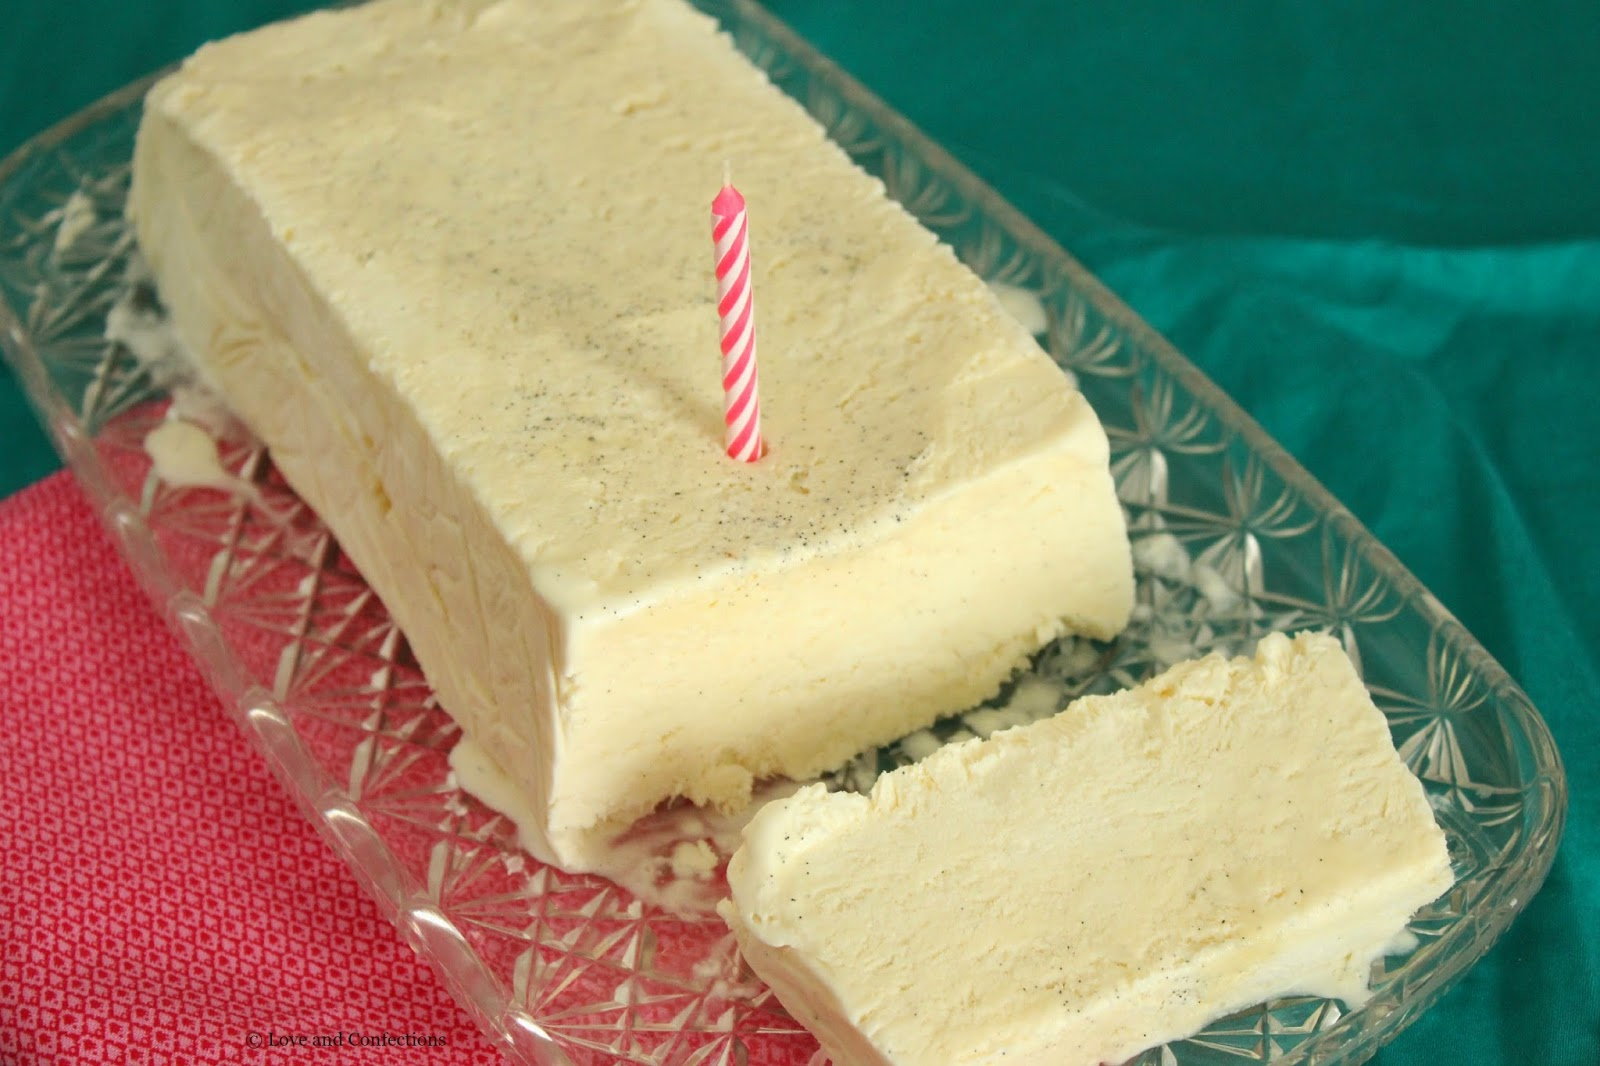 #VanillaWeek Vanilla Bean Semifreddo from LoveandConfections.com